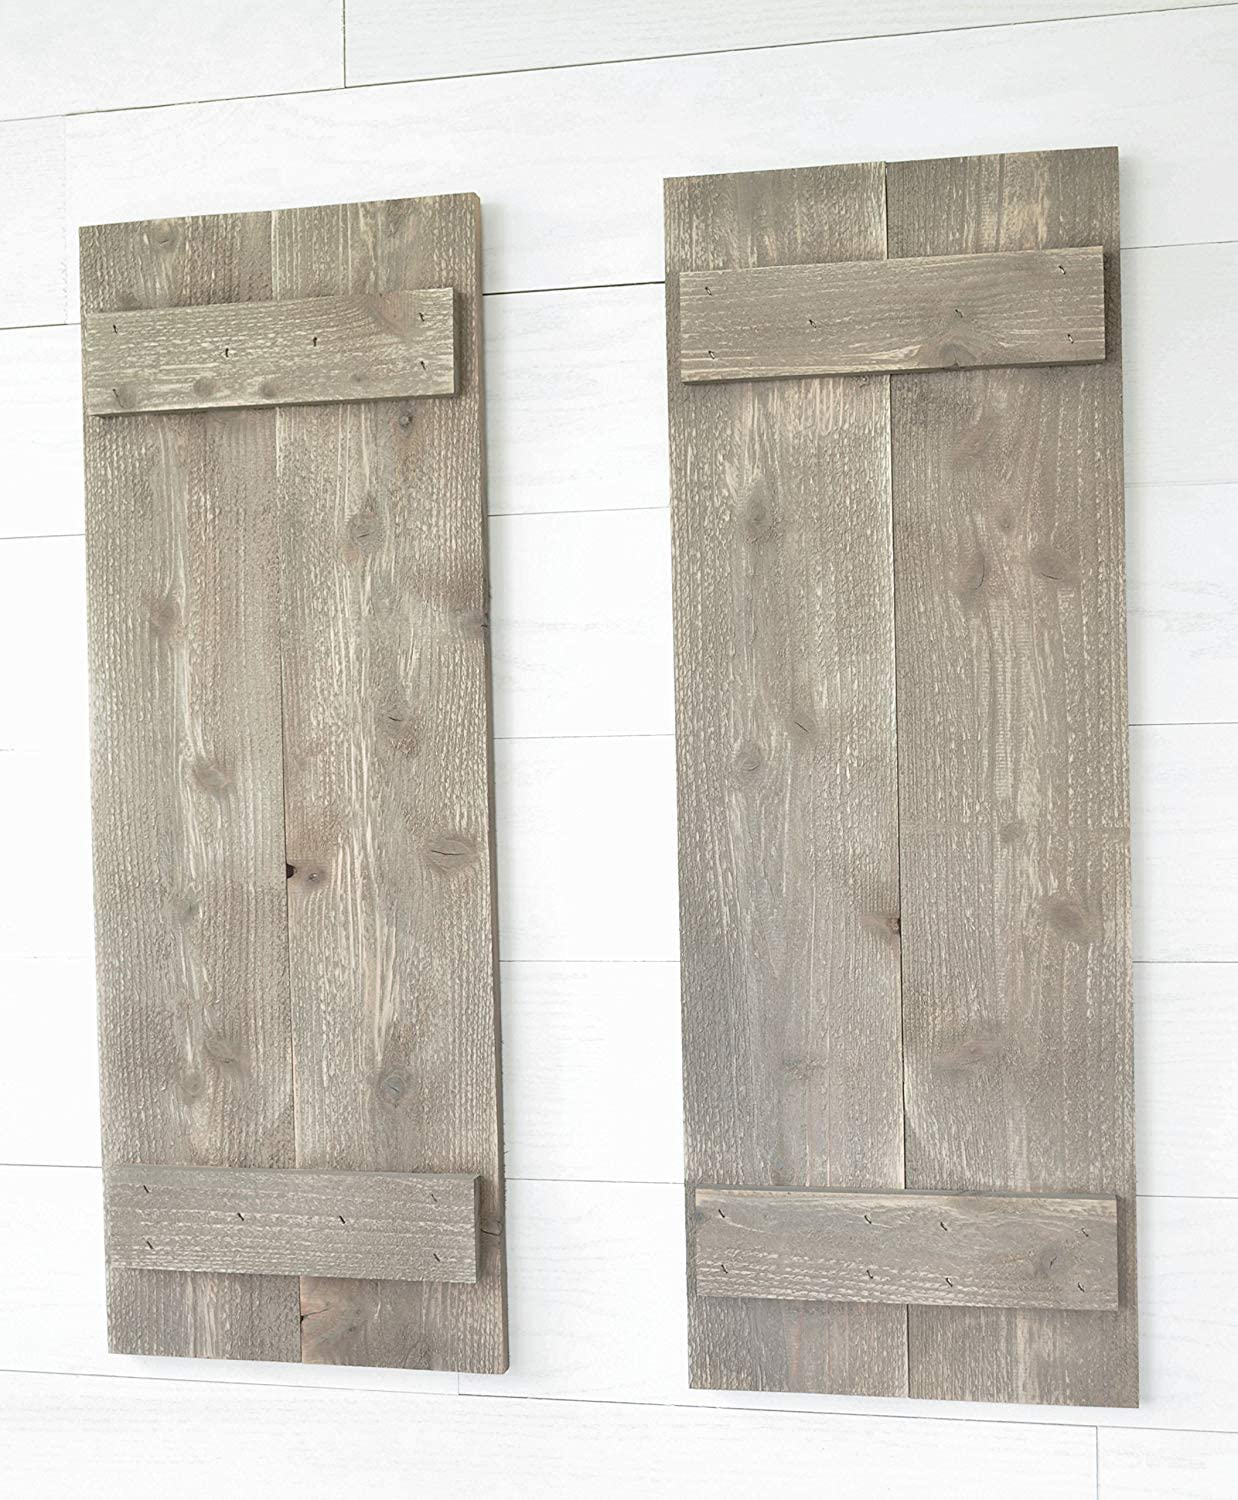 CELYCASY Rustic Barnwood Farmhouse Style Wood Shutters Set of Two 30